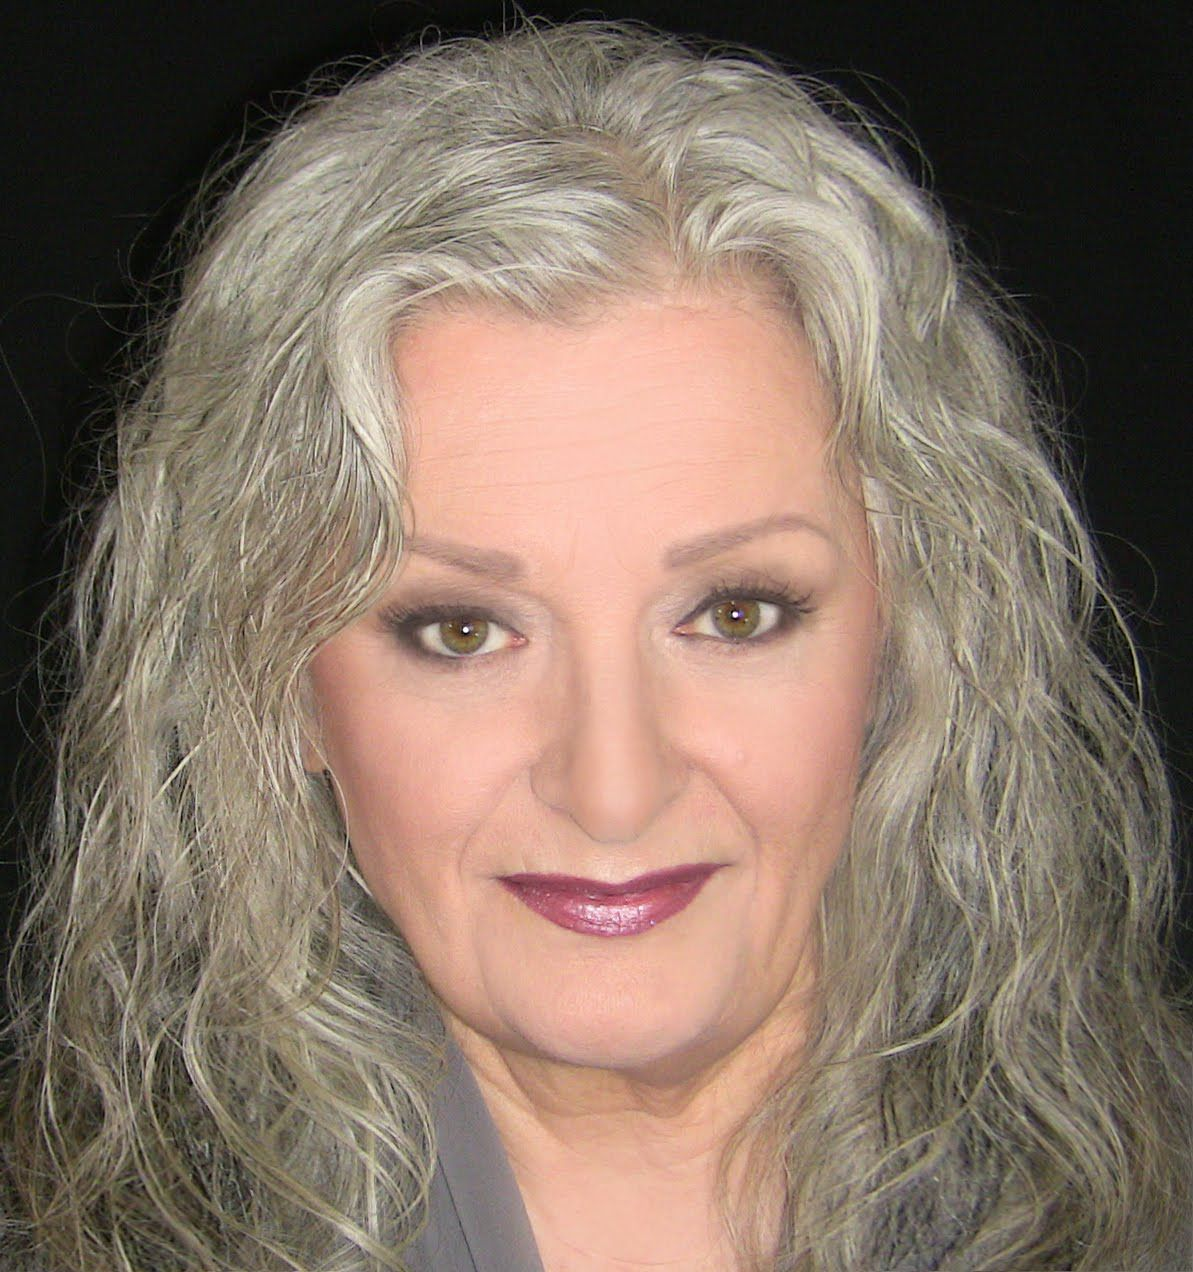 Extensions for natural curly or wavy gray hair d hair ideas extensions for natural curly or wavy gray hair d pmusecretfo Image collections